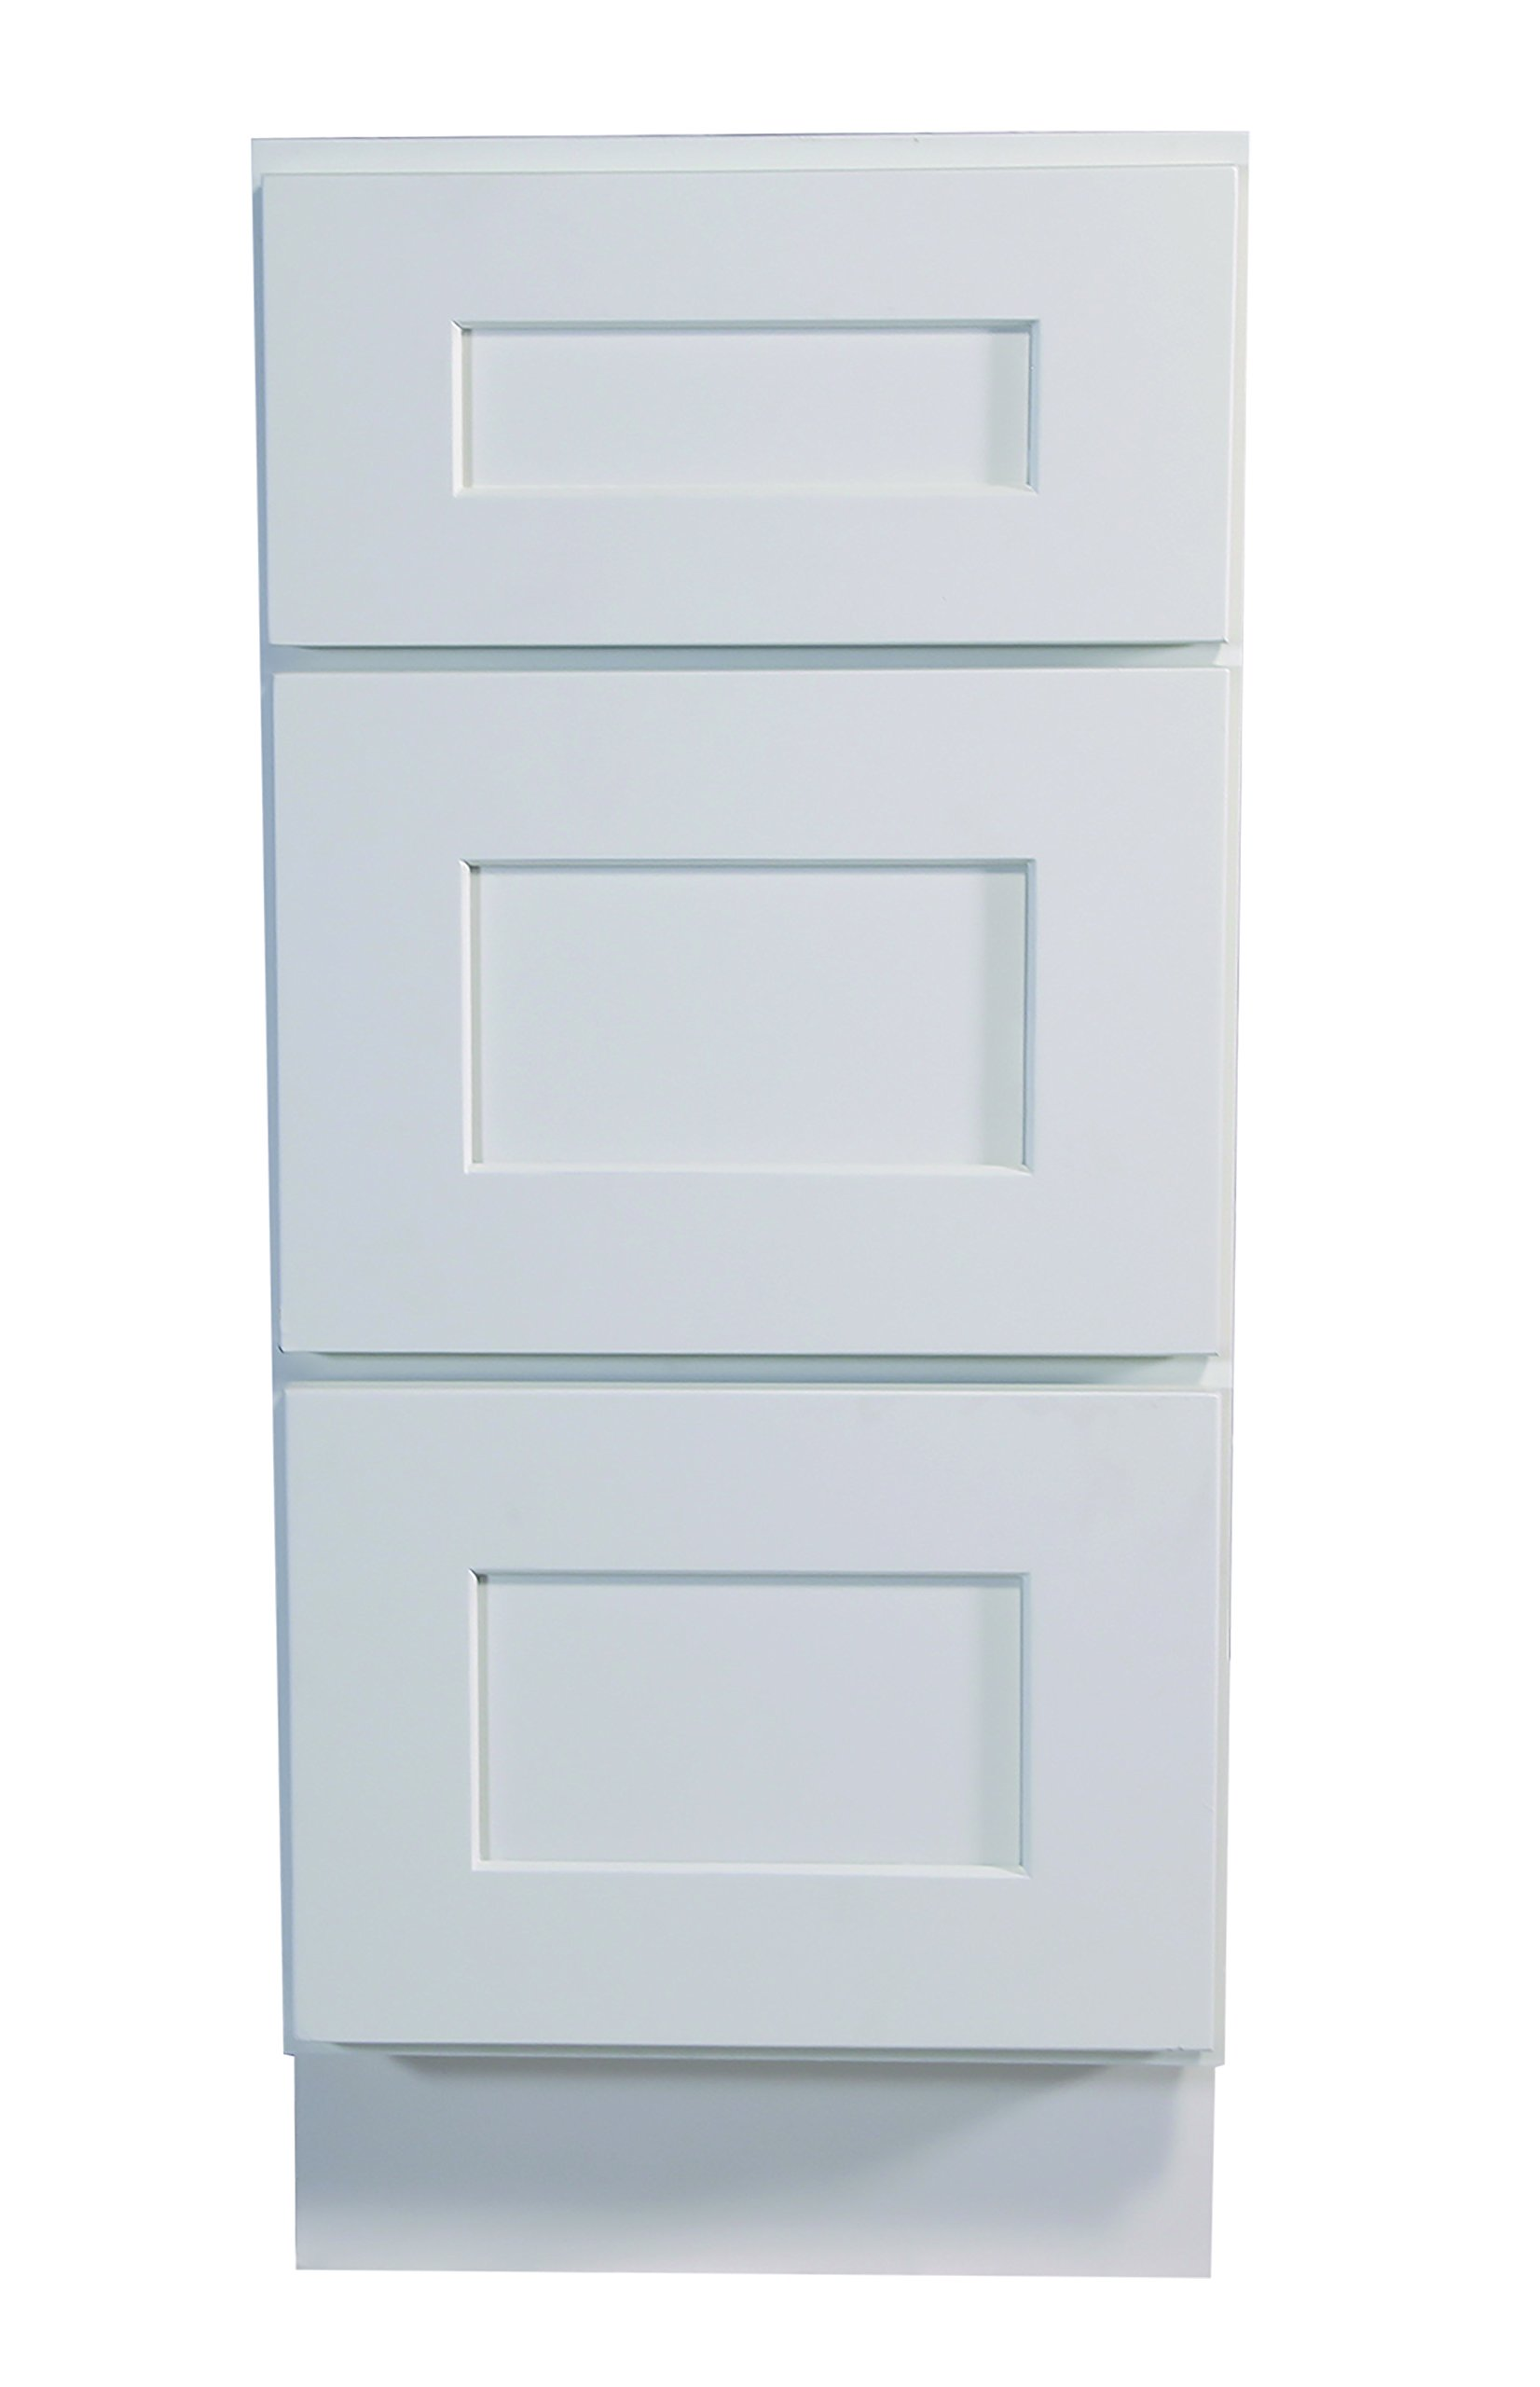 Design House 561464 Brookings 18-Inch Drawer Base Cabinet, White Shaker by Design House